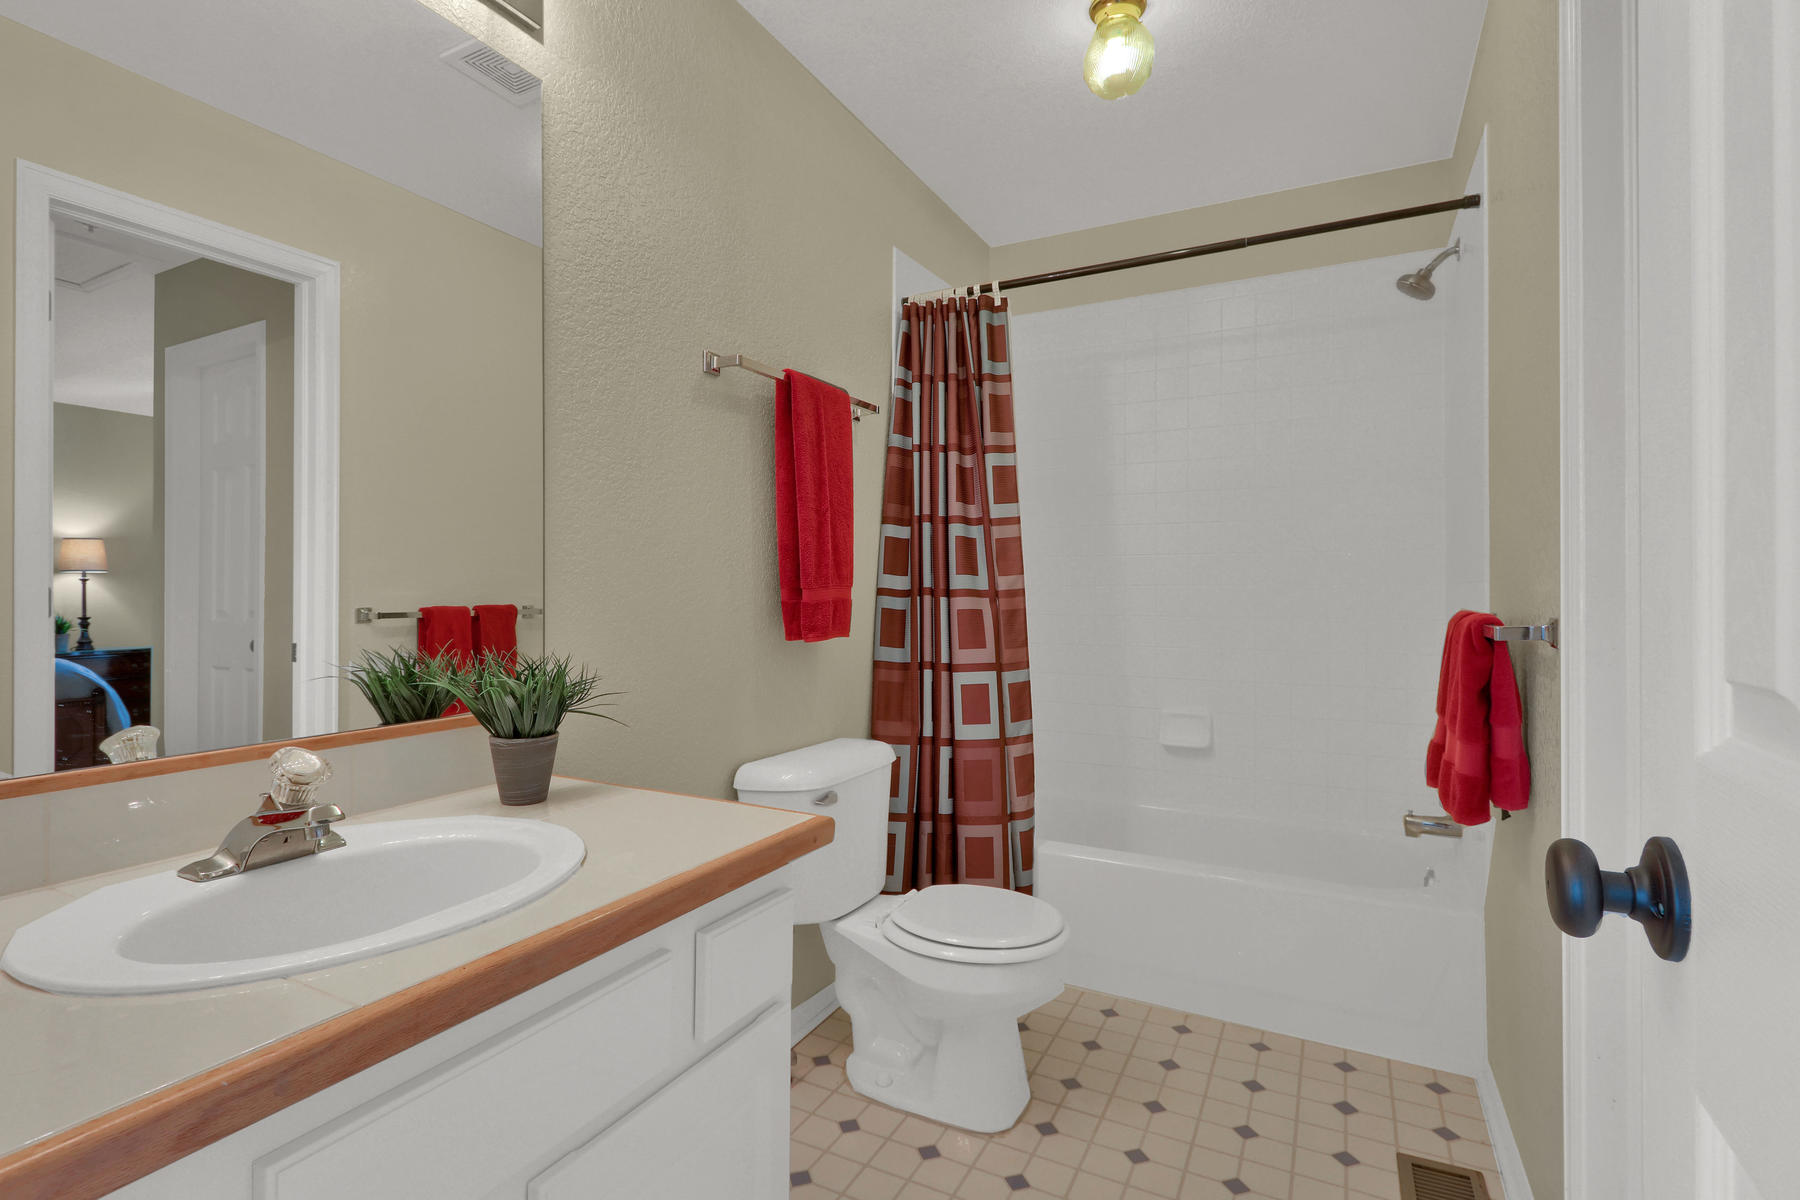 6250 Everett Ct Unit F Arvada-020-024-Bathroom-MLS_Size.jpg